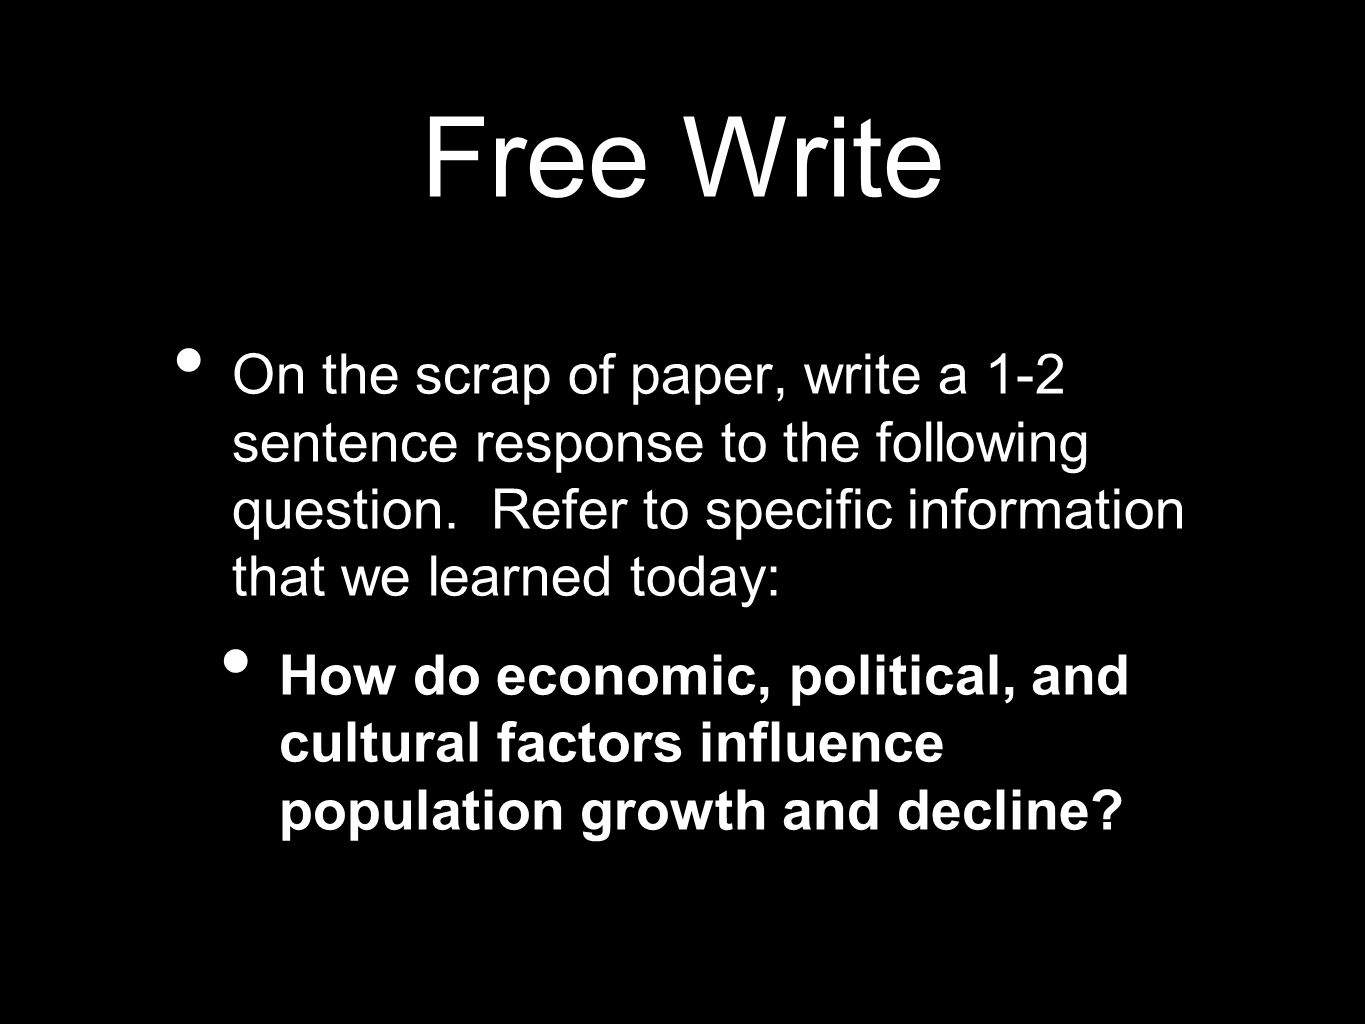 Free Write On the scrap of paper, write a 1-2 sentence response to the following question. Refer to specific information that we learned today: